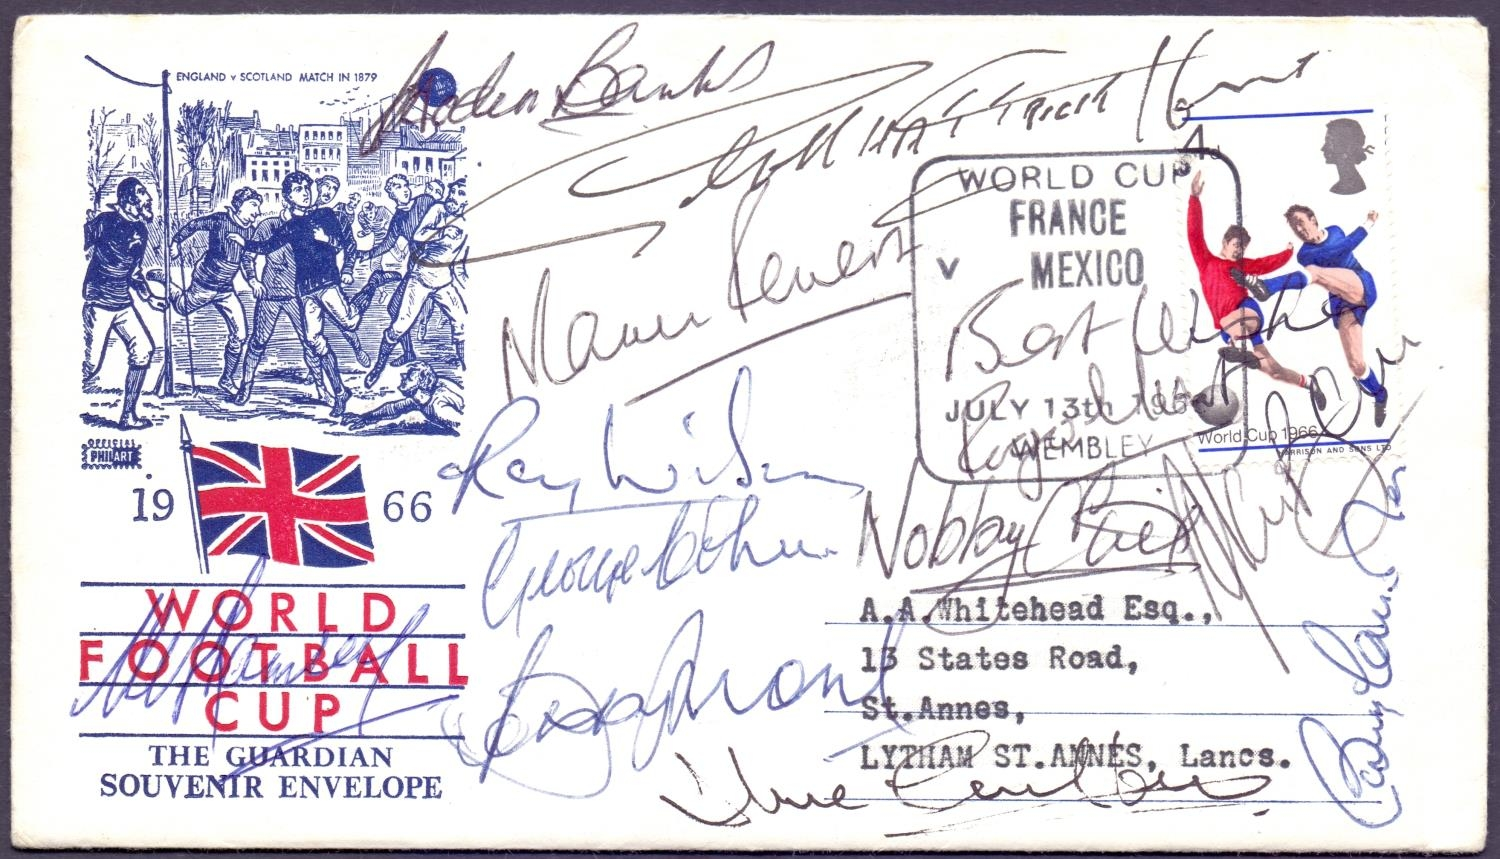 Collection of Stamps and Covers signed by 1966 World Cup players. Photo: Martello Philatelic Auctions